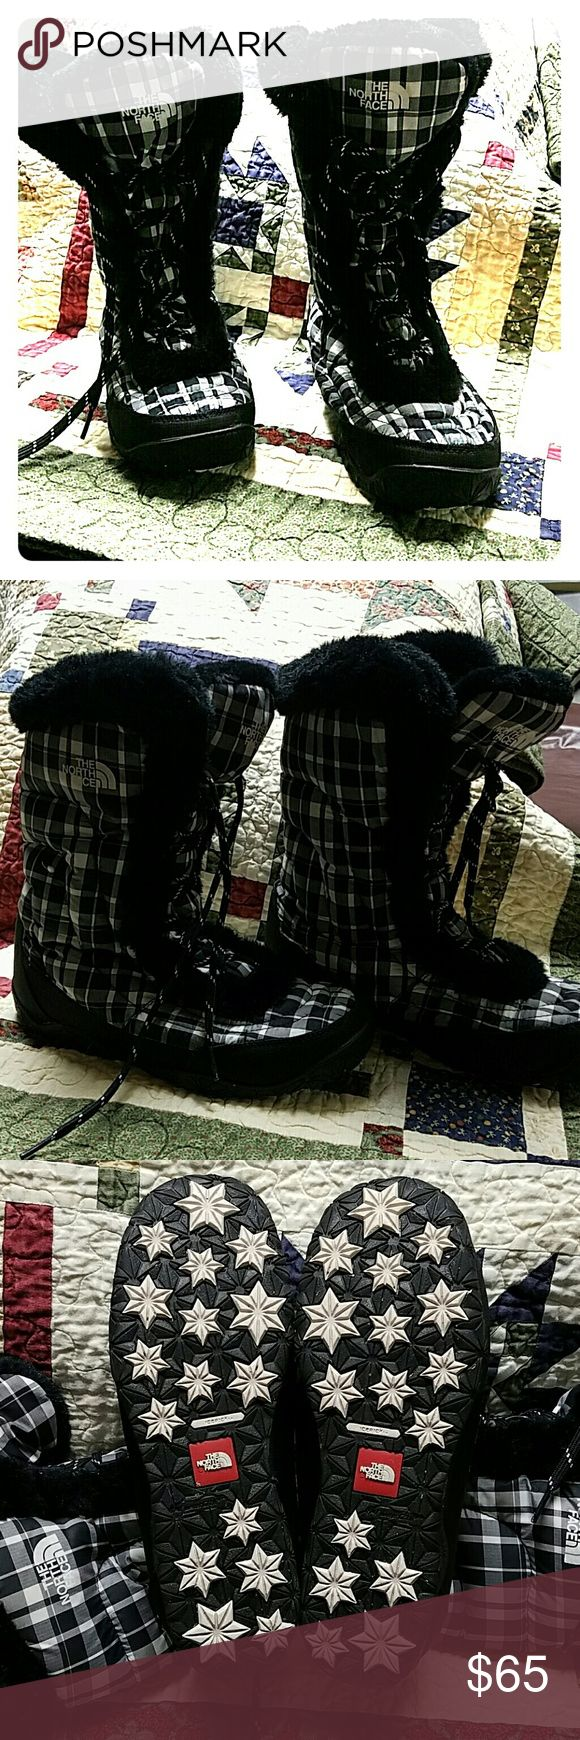 North Face women's ice pick boot,  size 8 North Face ice pick woman's winter boots,  size 8. Black/white plaid.. so cute.  Worn 3 times. North Face Shoes Winter & Rain Boots